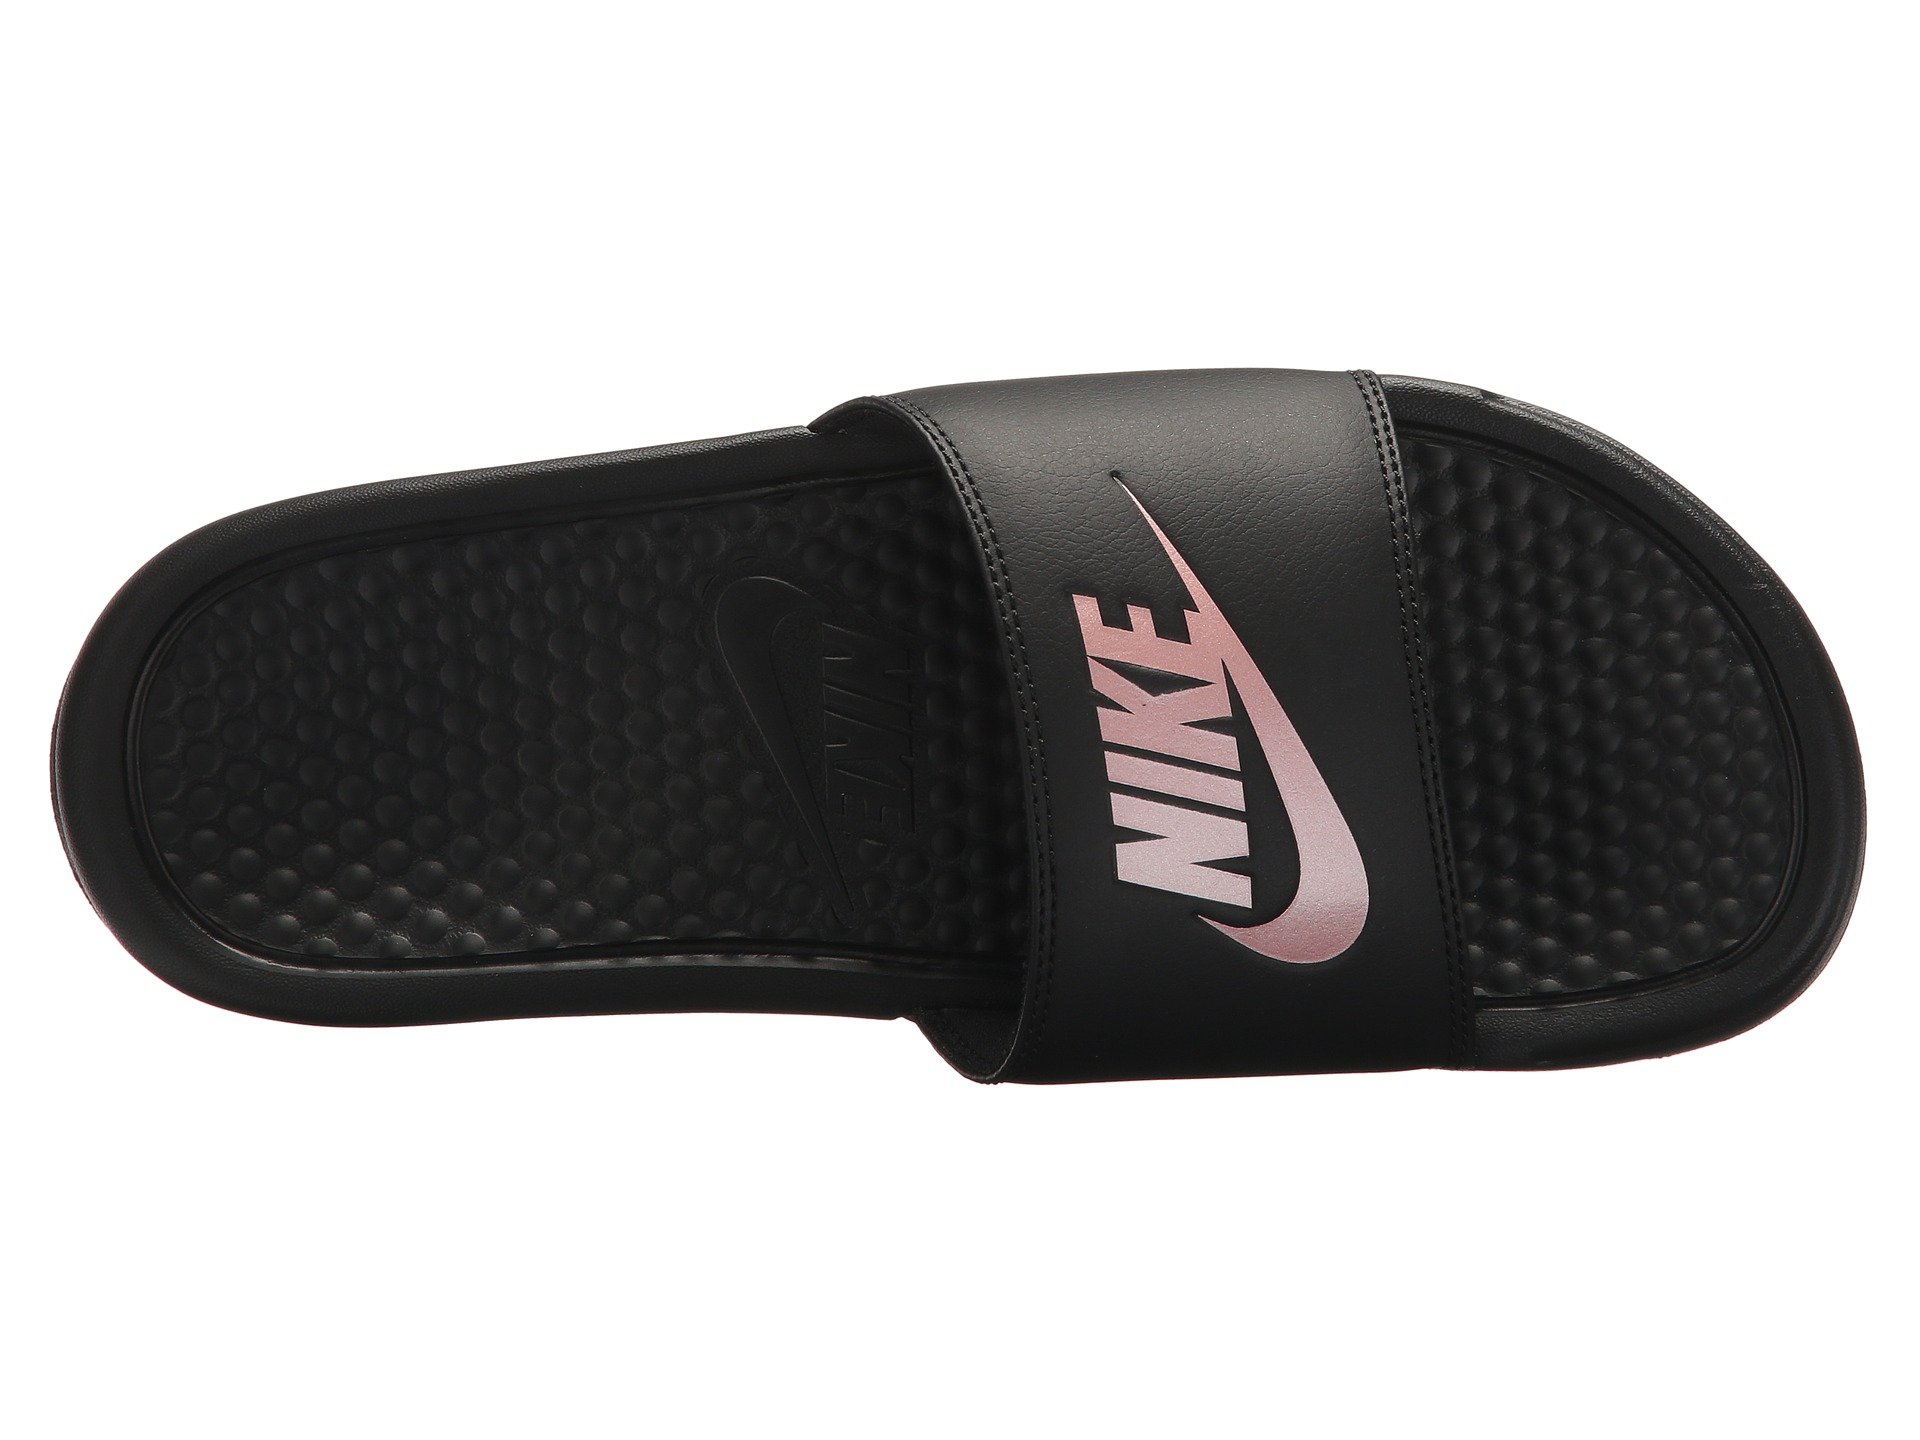 0f88013dae91 Zappos  Nike Slides – only  15 Shipped! – Wear It For Less